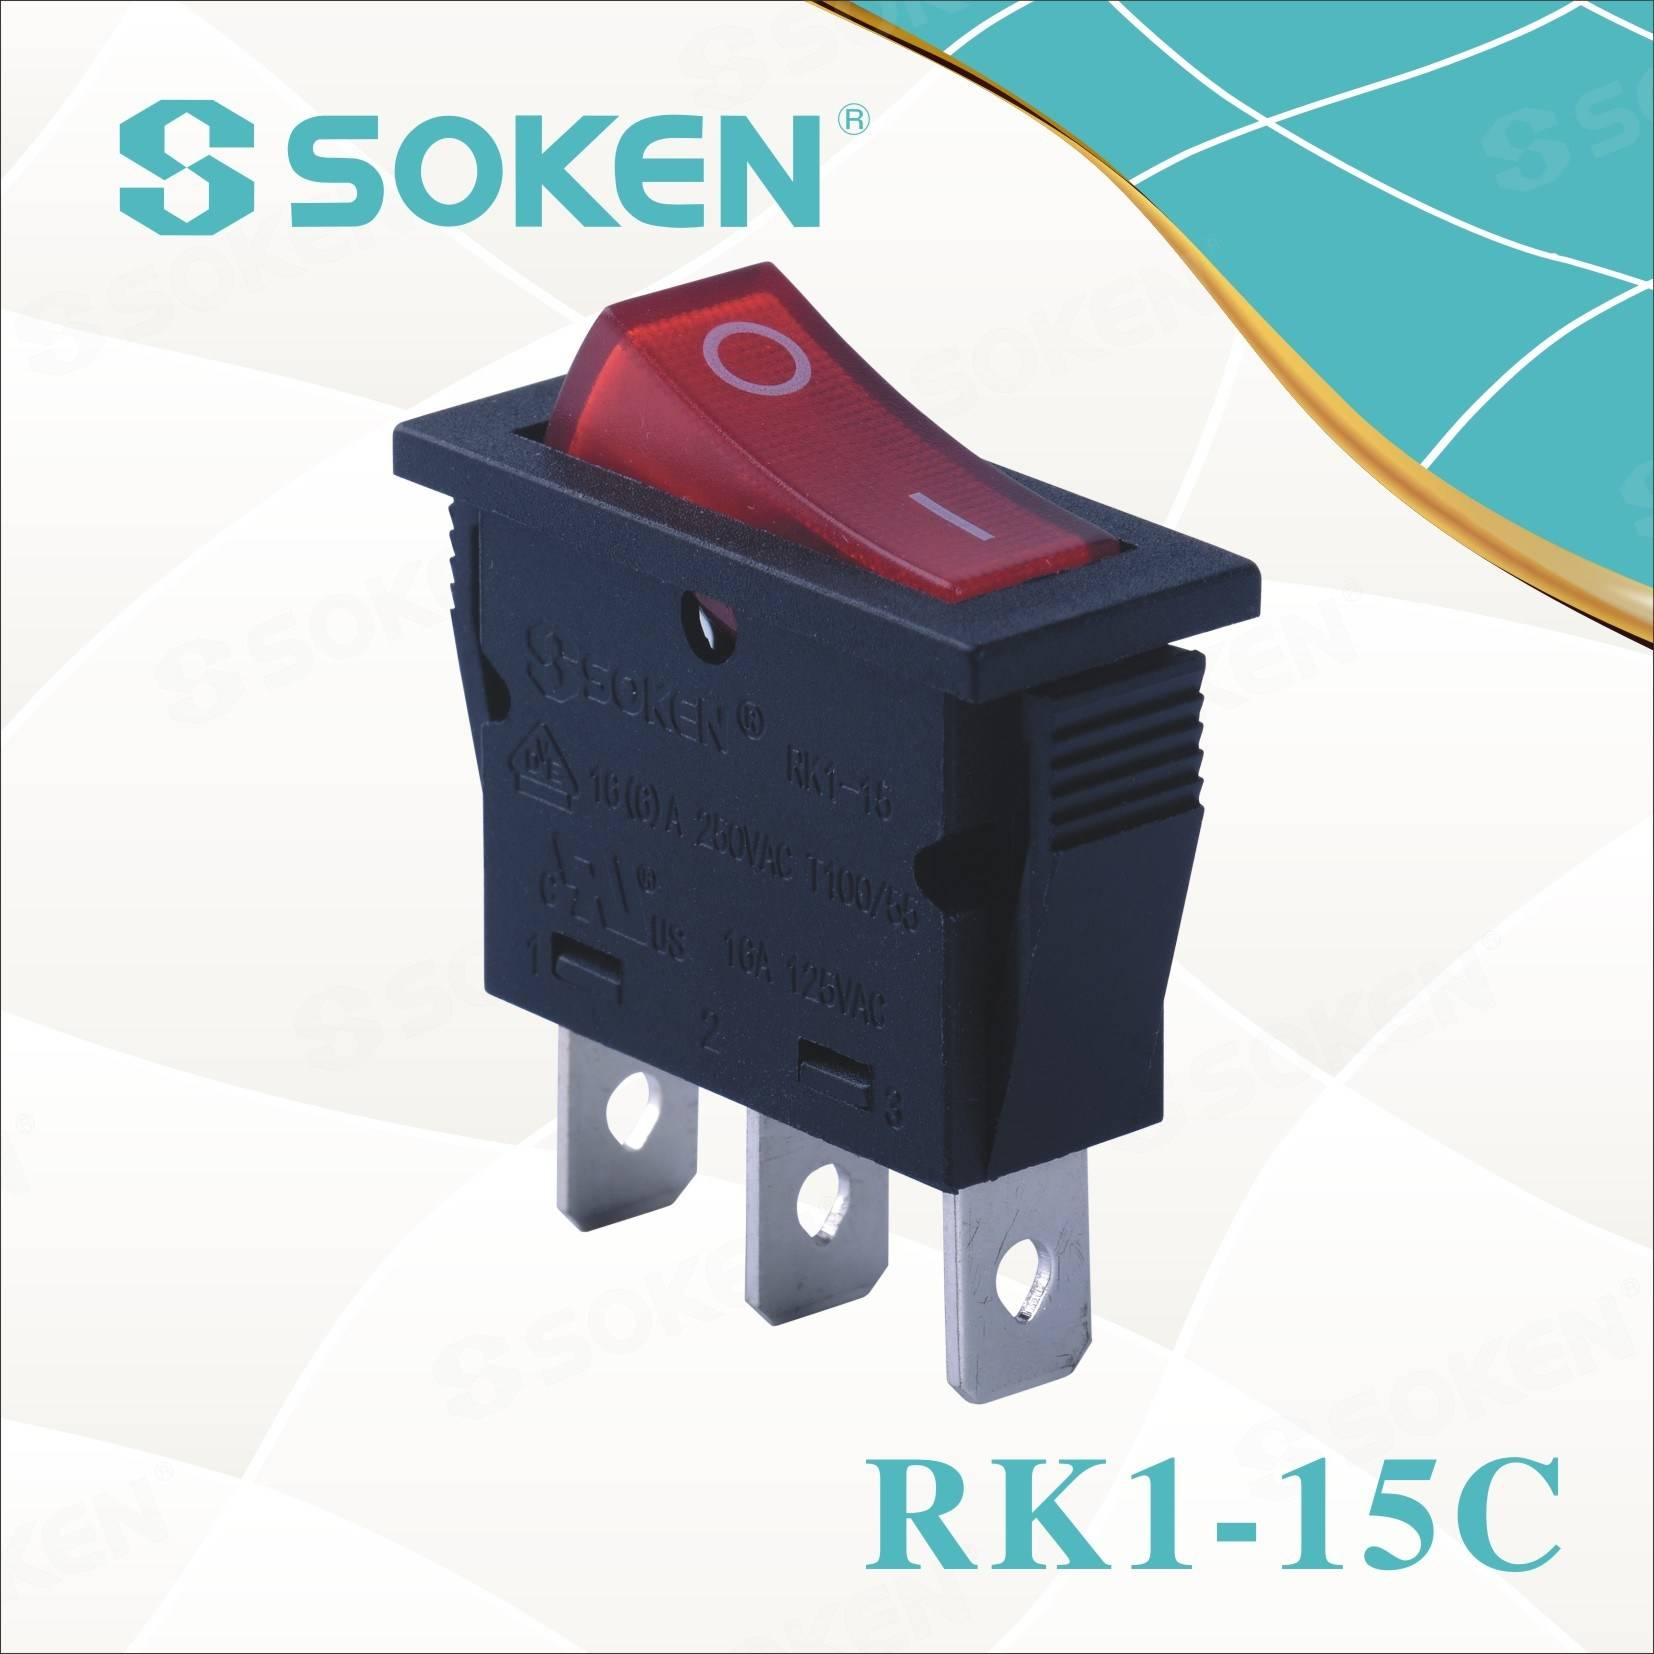 Soken Rk1-15c Auga Rocker Switch Proof